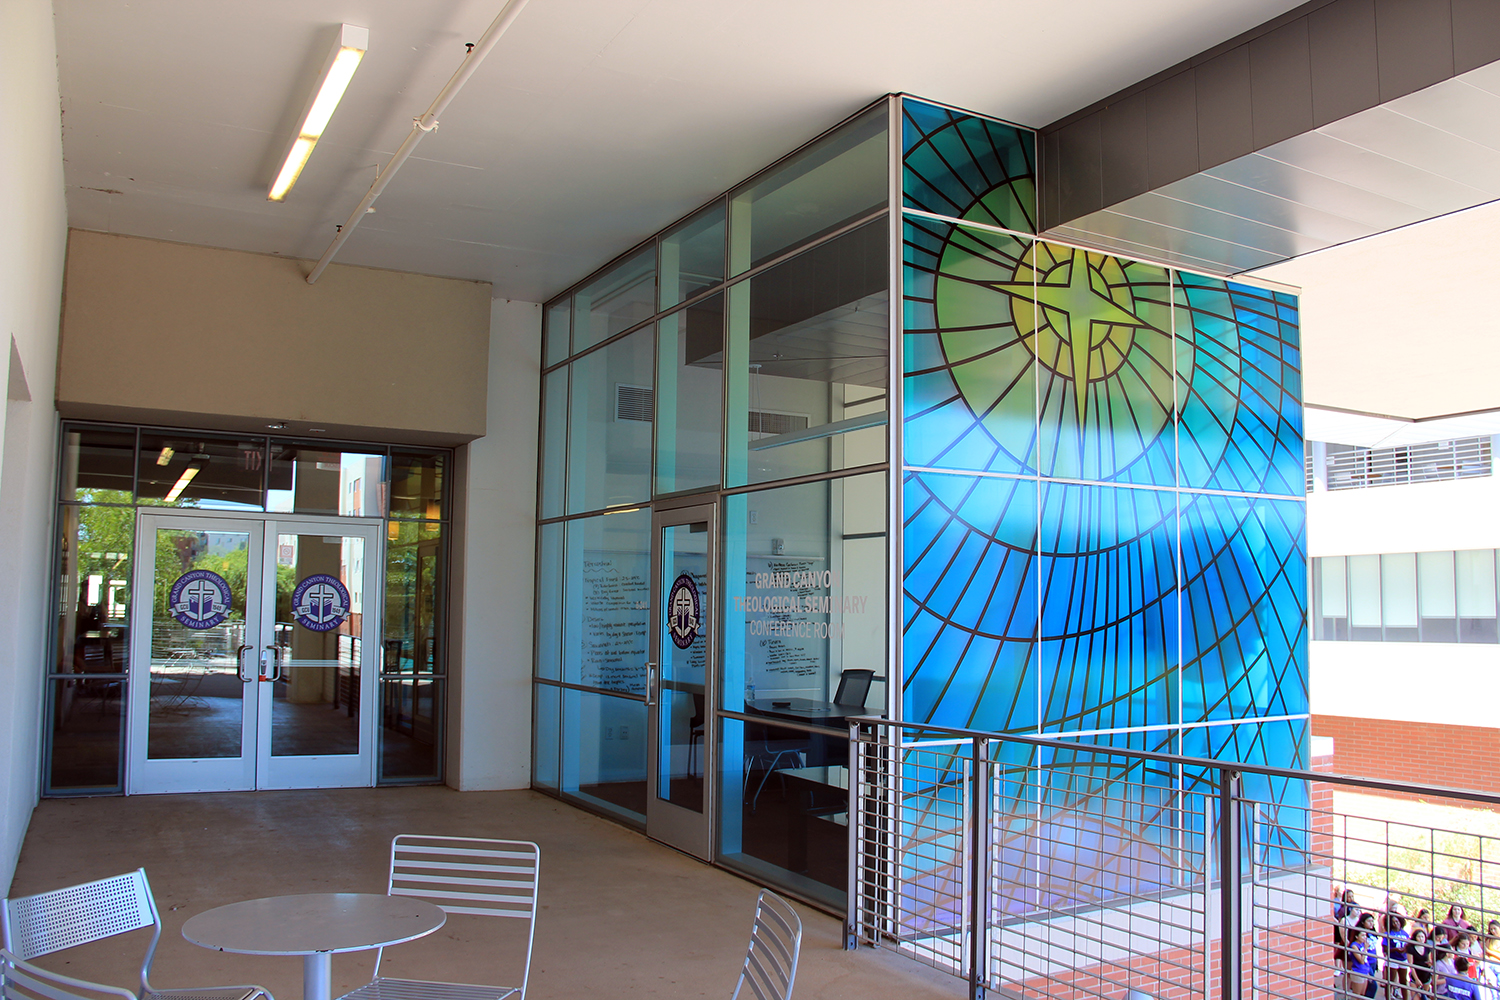 GCU Stained Glass Window Graphic